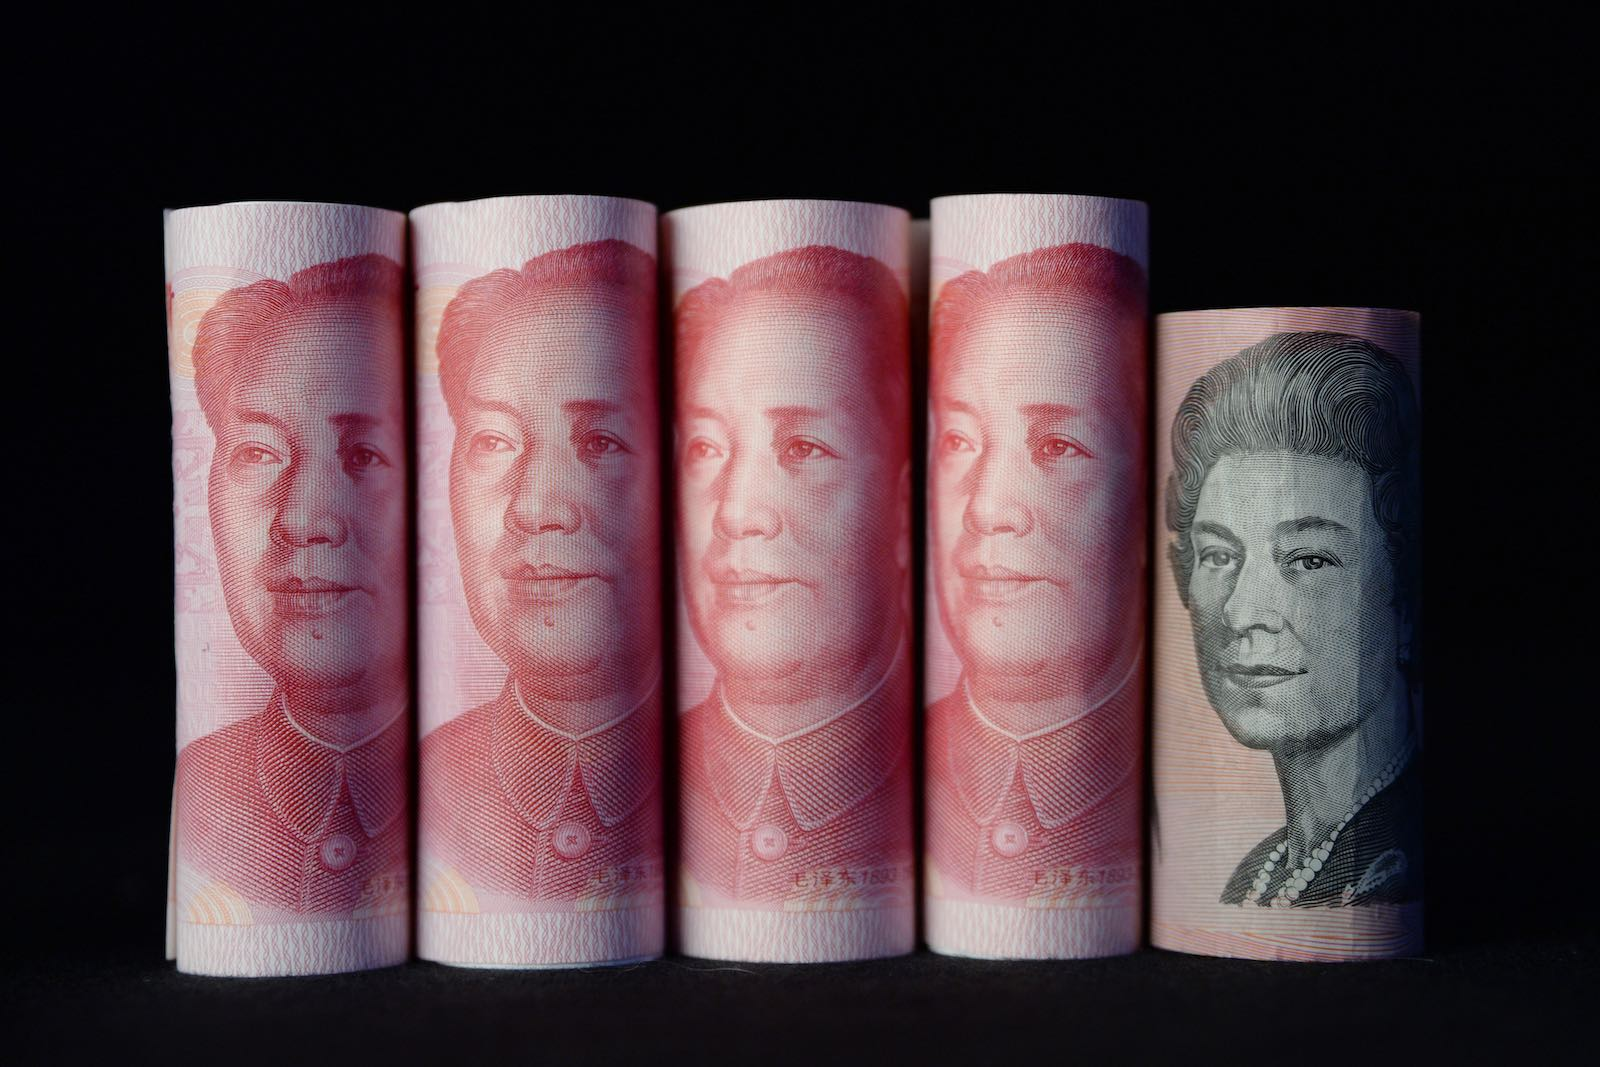 Money talks, but of China and Australia, what counts as soft power in the Pacific? (Photo: Carla Gottgens via Getty)